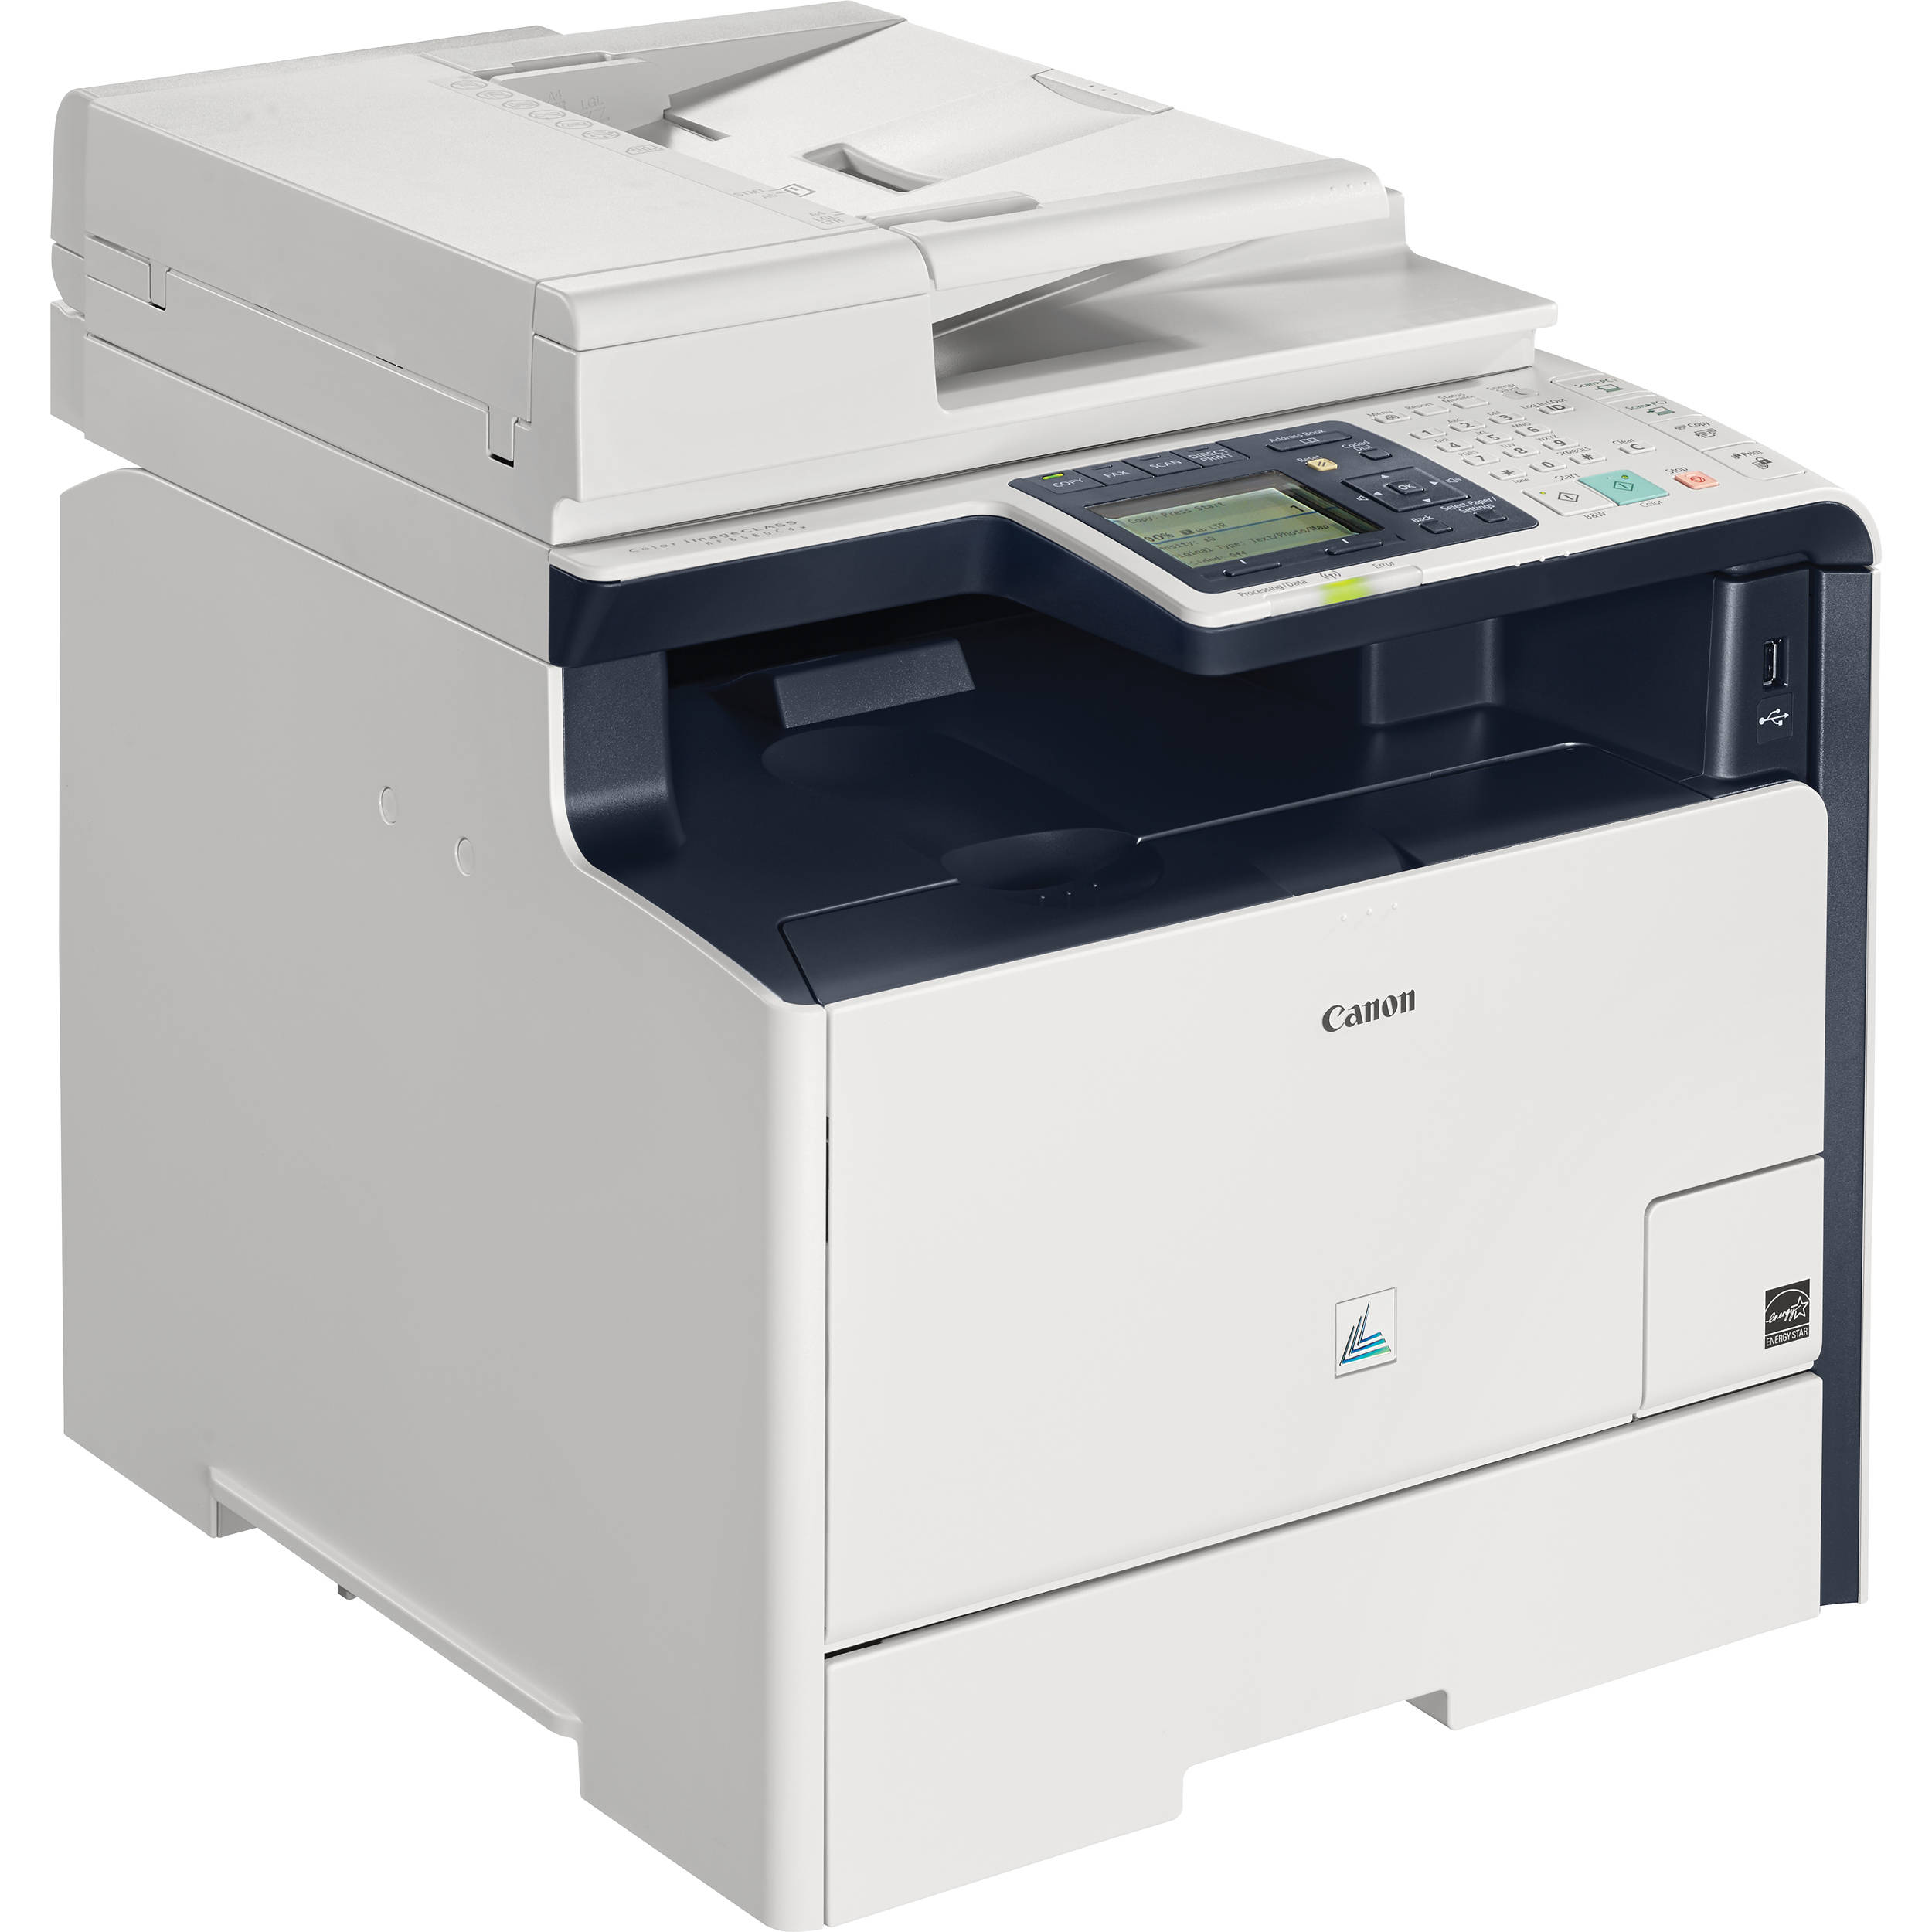 Color printers laser - 11x17 Color Printer Laser Canon Imageclass Mf8580cdw Wireless Color All In One Laser Printer